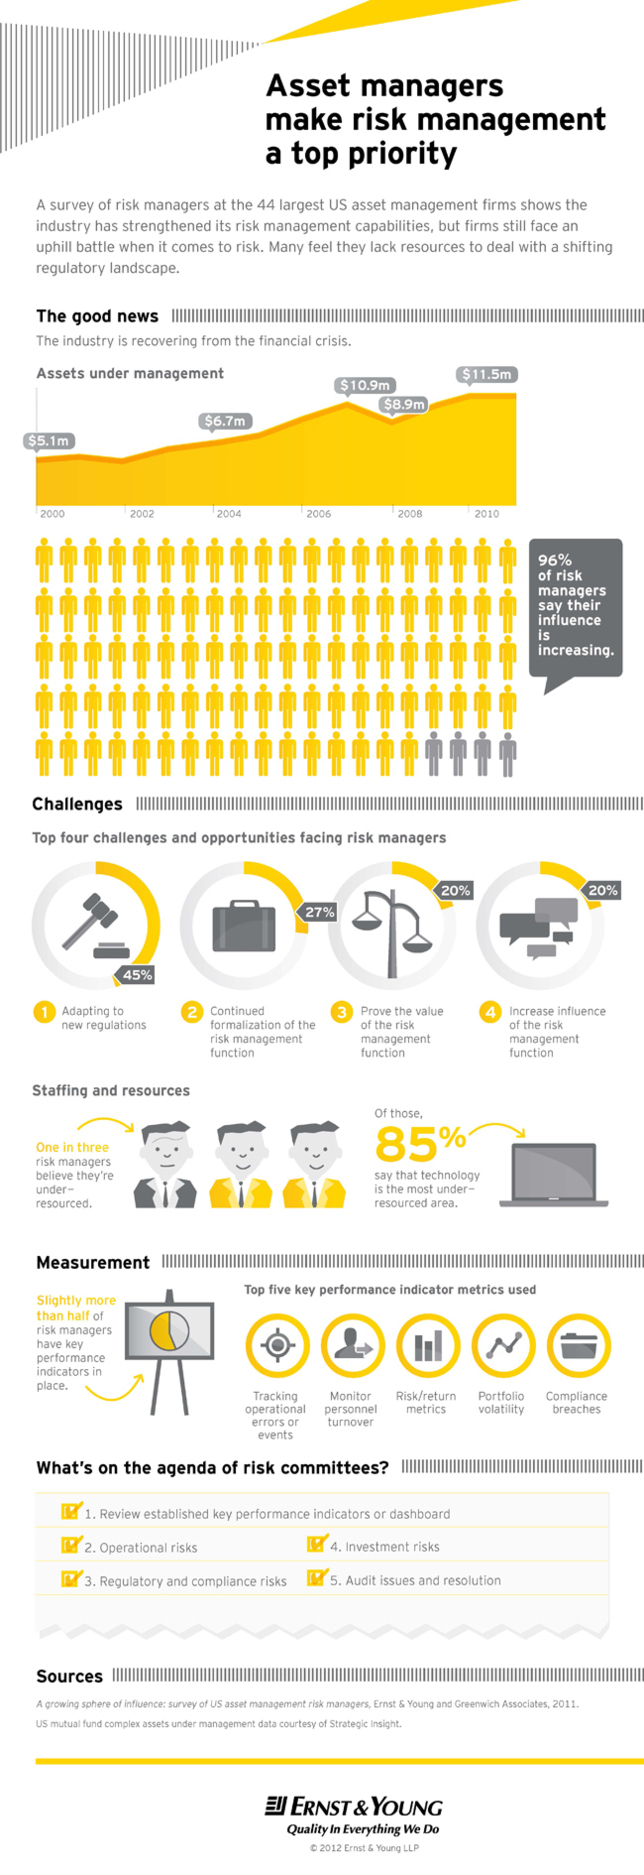 Ernst & Young reports risk managers have increased influence